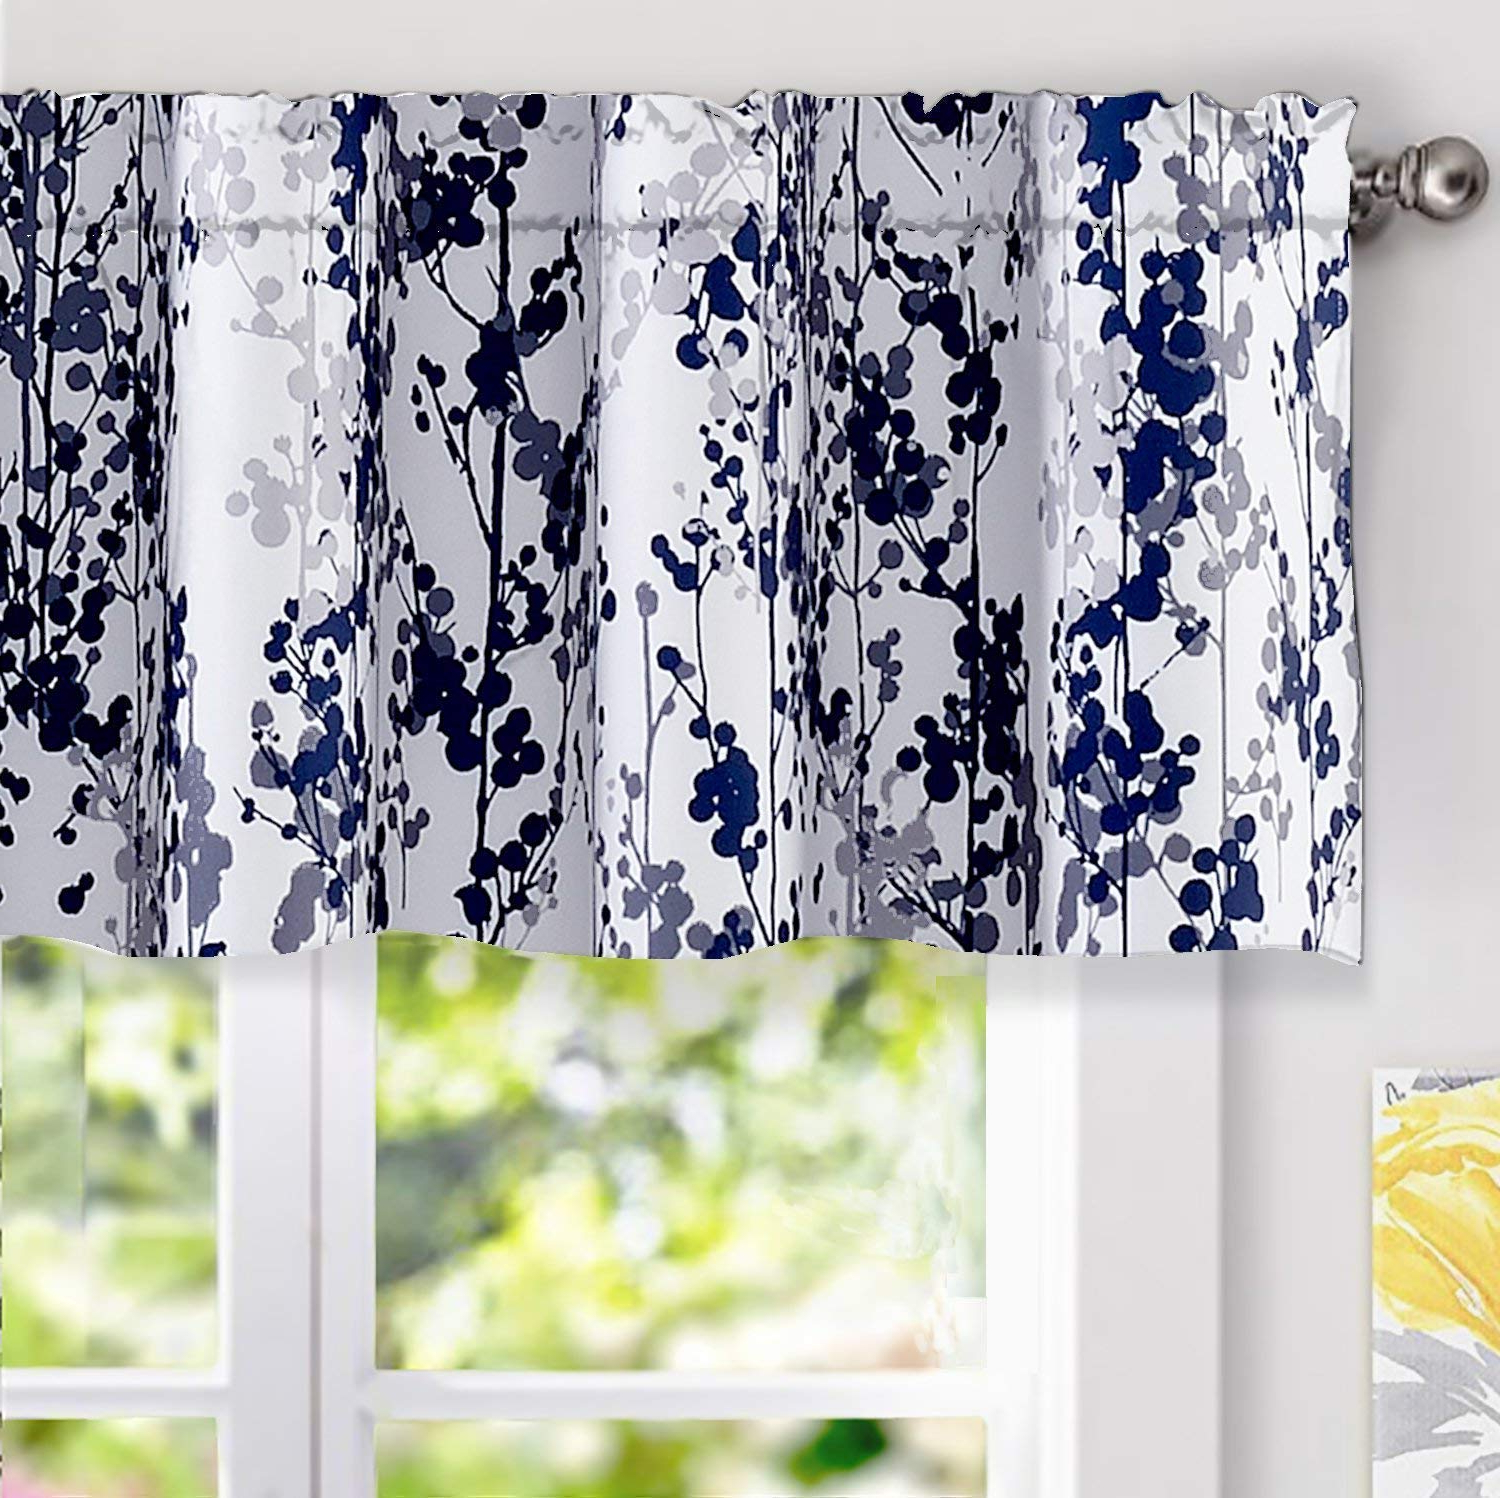 Most Current Driftaway Leah Abstract Floral Blossom Ink Painting Window Curtain Valance Rod Pocket 52 Inch18 Inch Plus 2 Inch Header Navy Silver Gray For Floral Blossom Ink Painting Thermal Room Darkening Kitchen Tier Pairs (View 8 of 20)